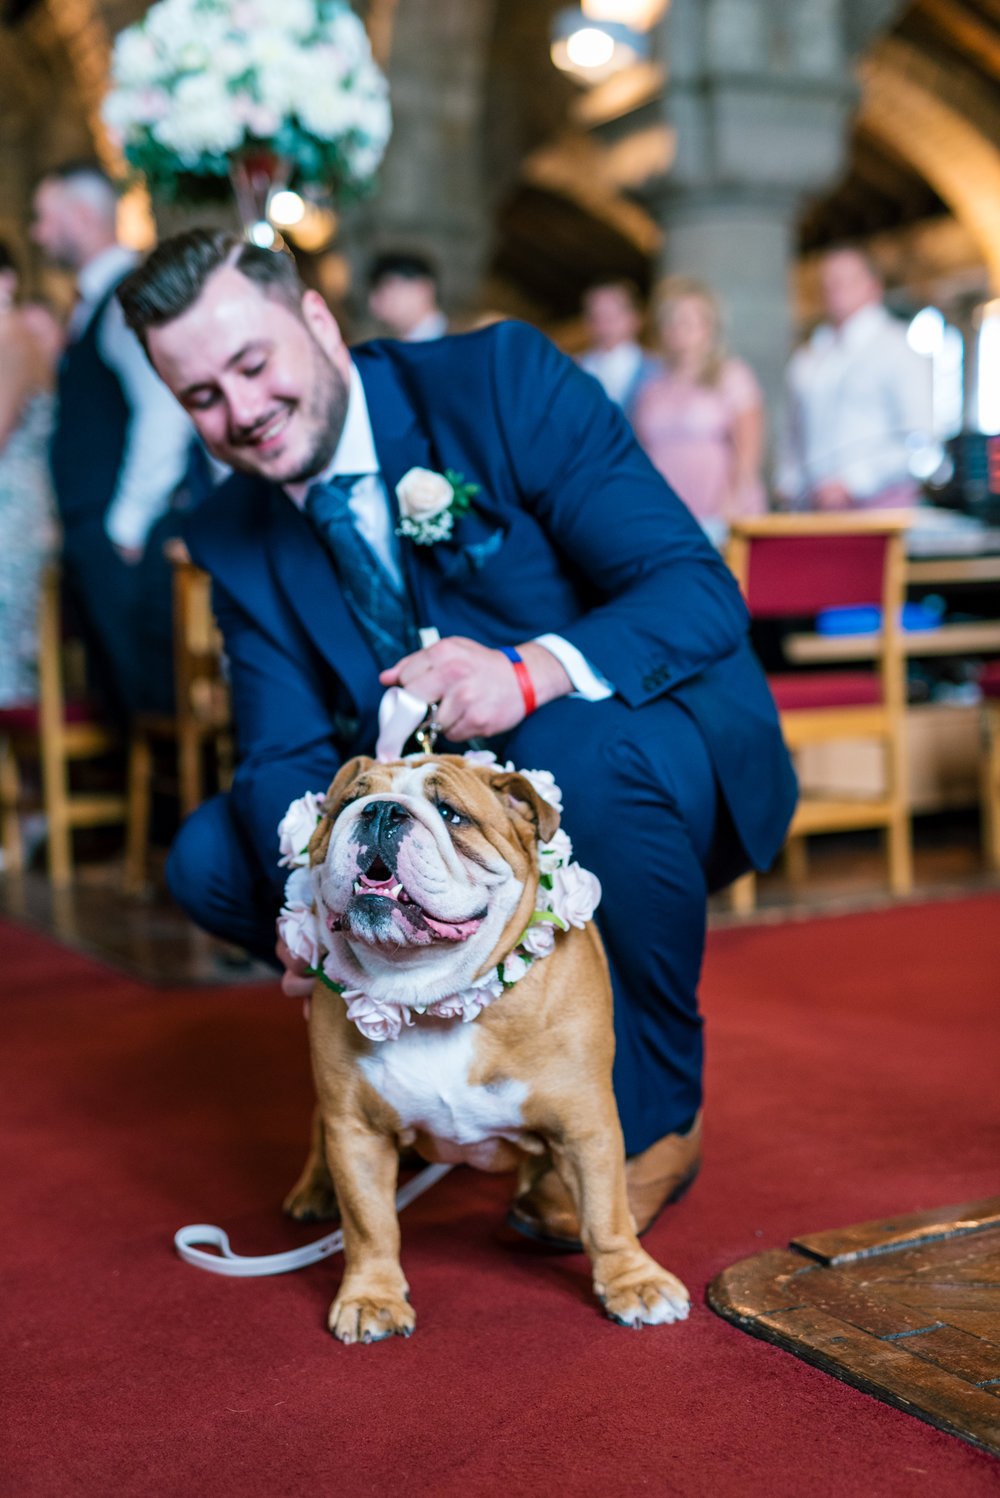 the dog is part of the wedding ceremony